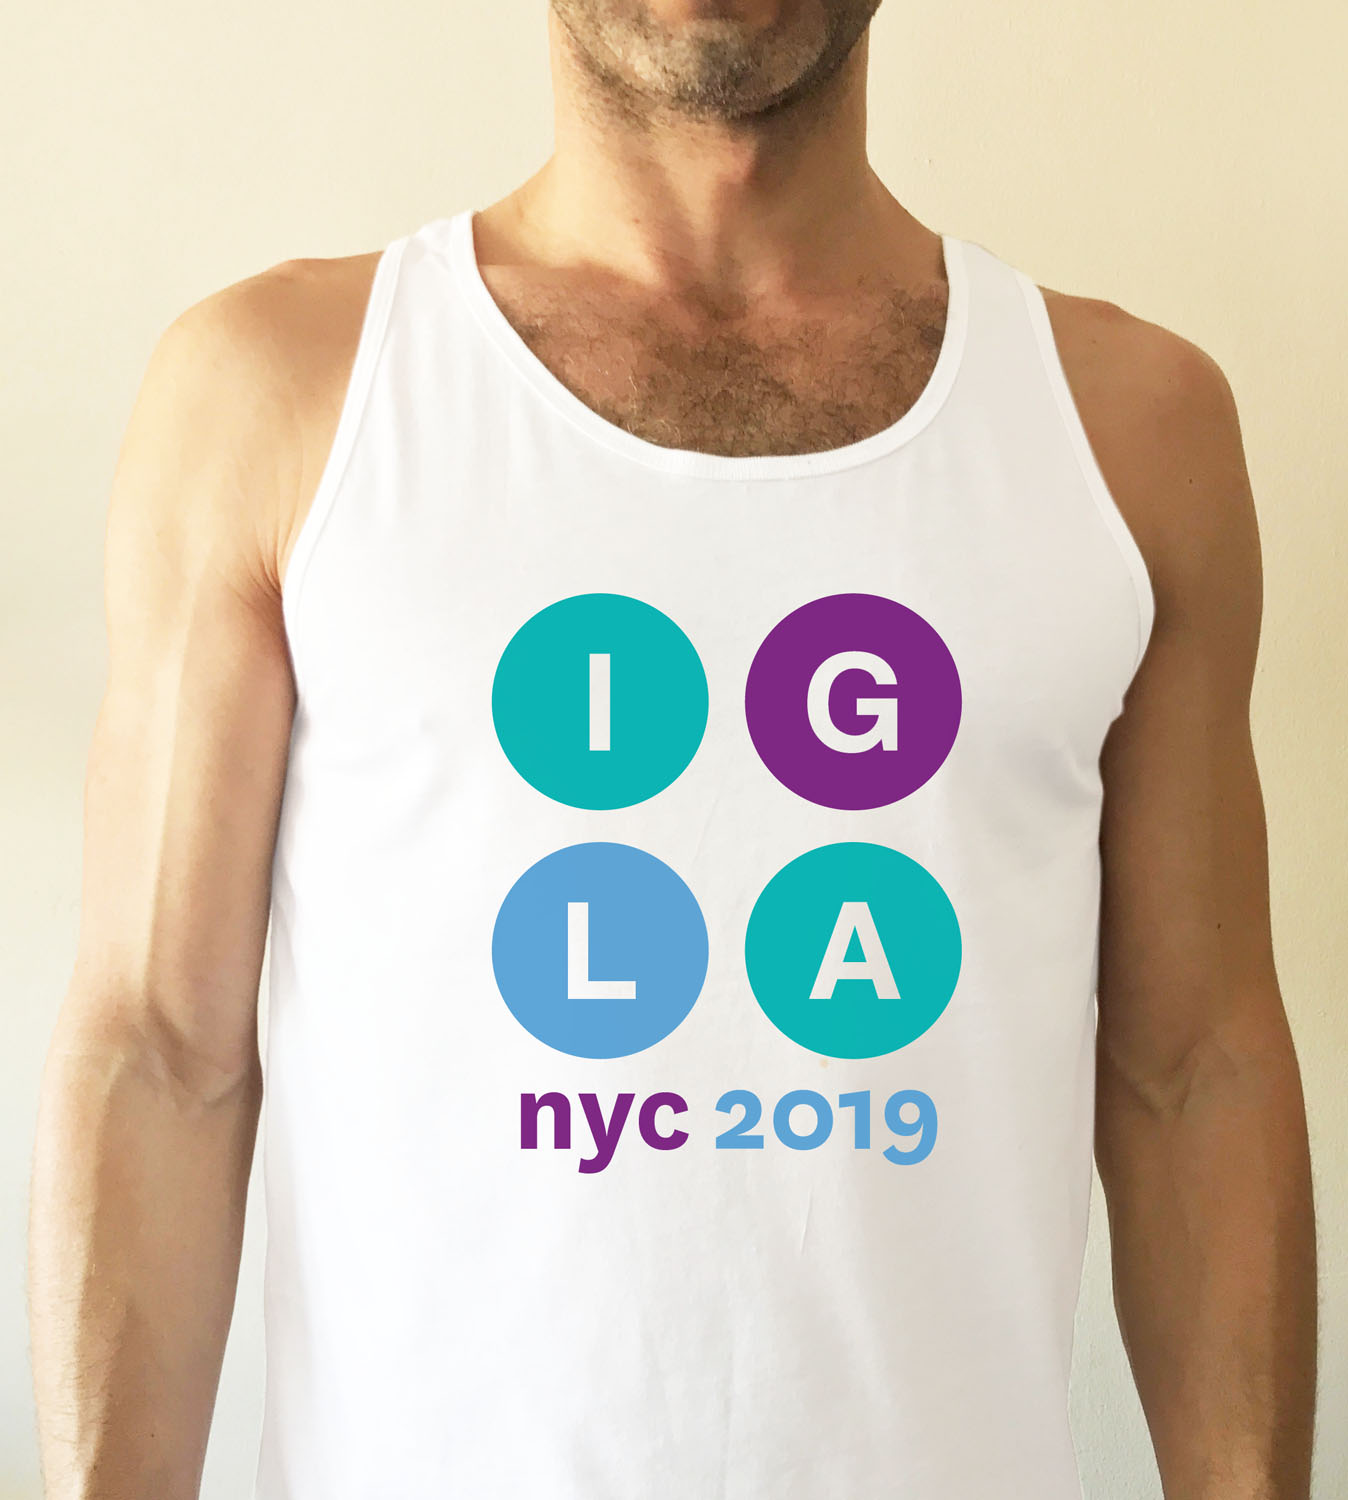 Unisex white fitted tank top with IGLA 2019 graphic  $14